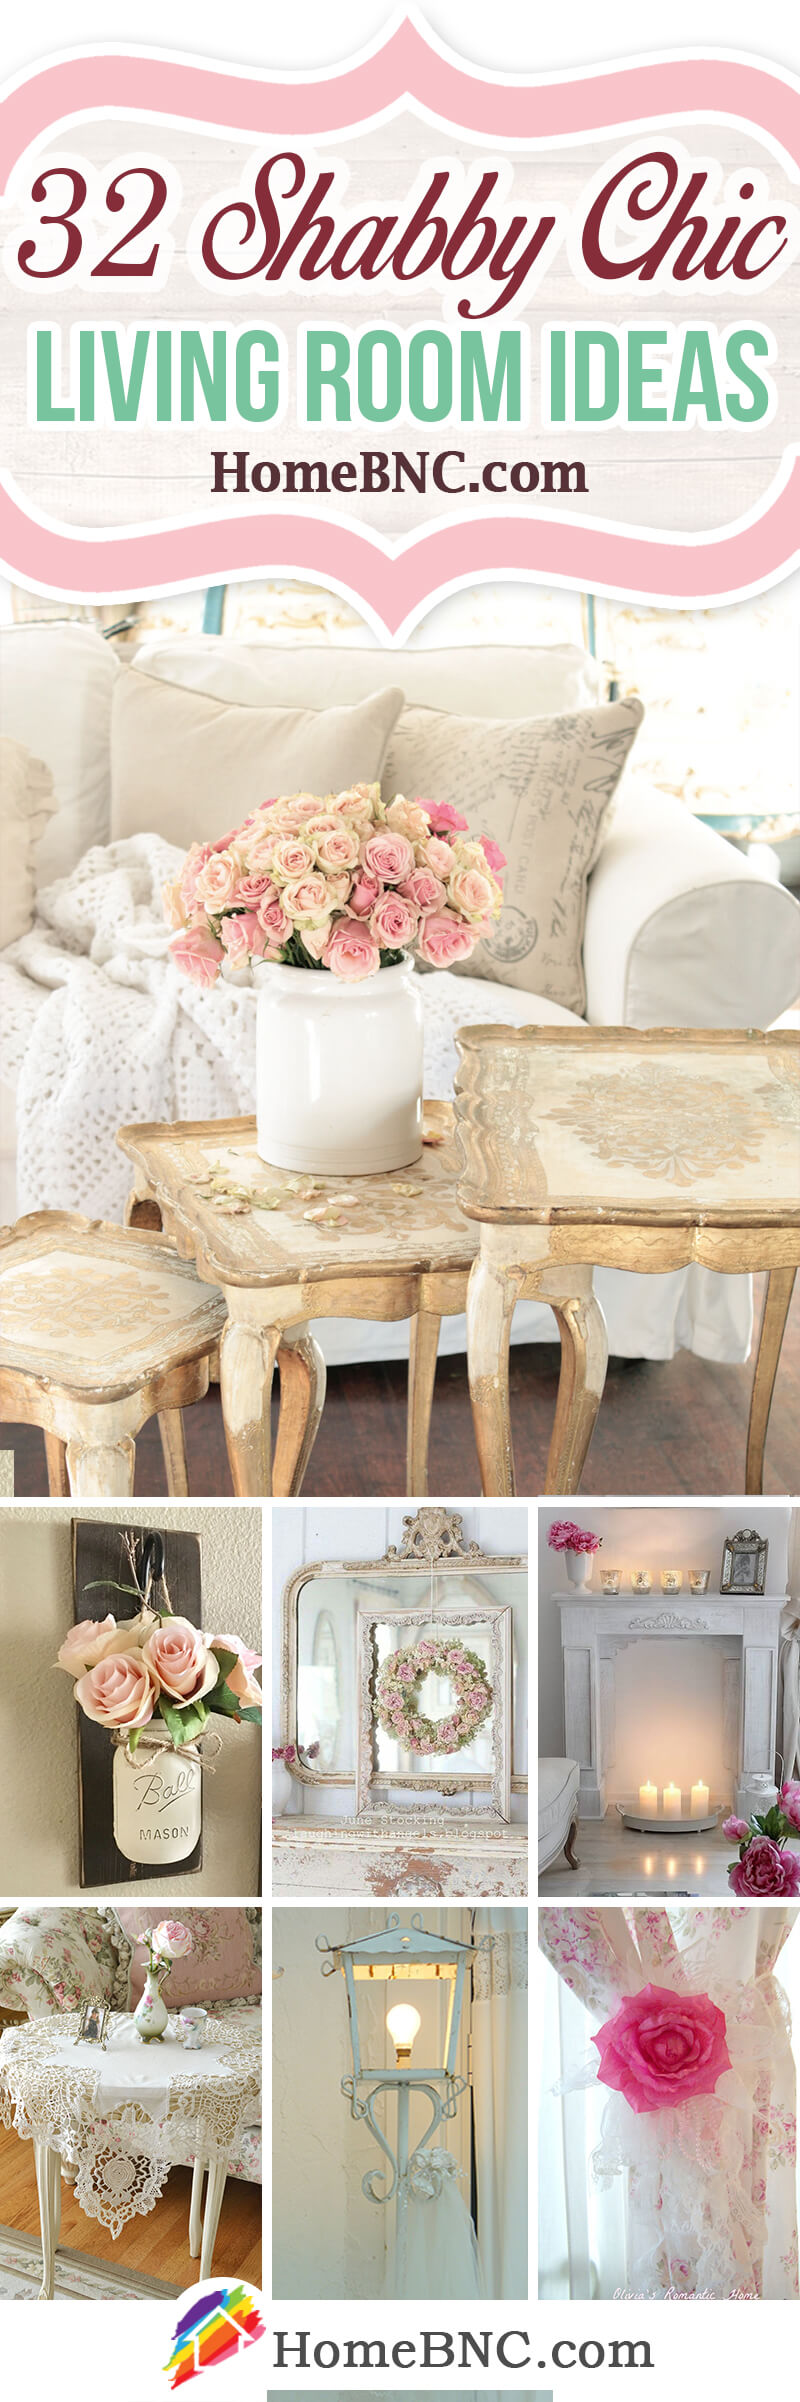 32 Shabby Chic Living Room Design and Decor Ideas that are Both Functional and Lovely & 32 Best Shabby Chic Living Room Decor Ideas and Designs for 2019